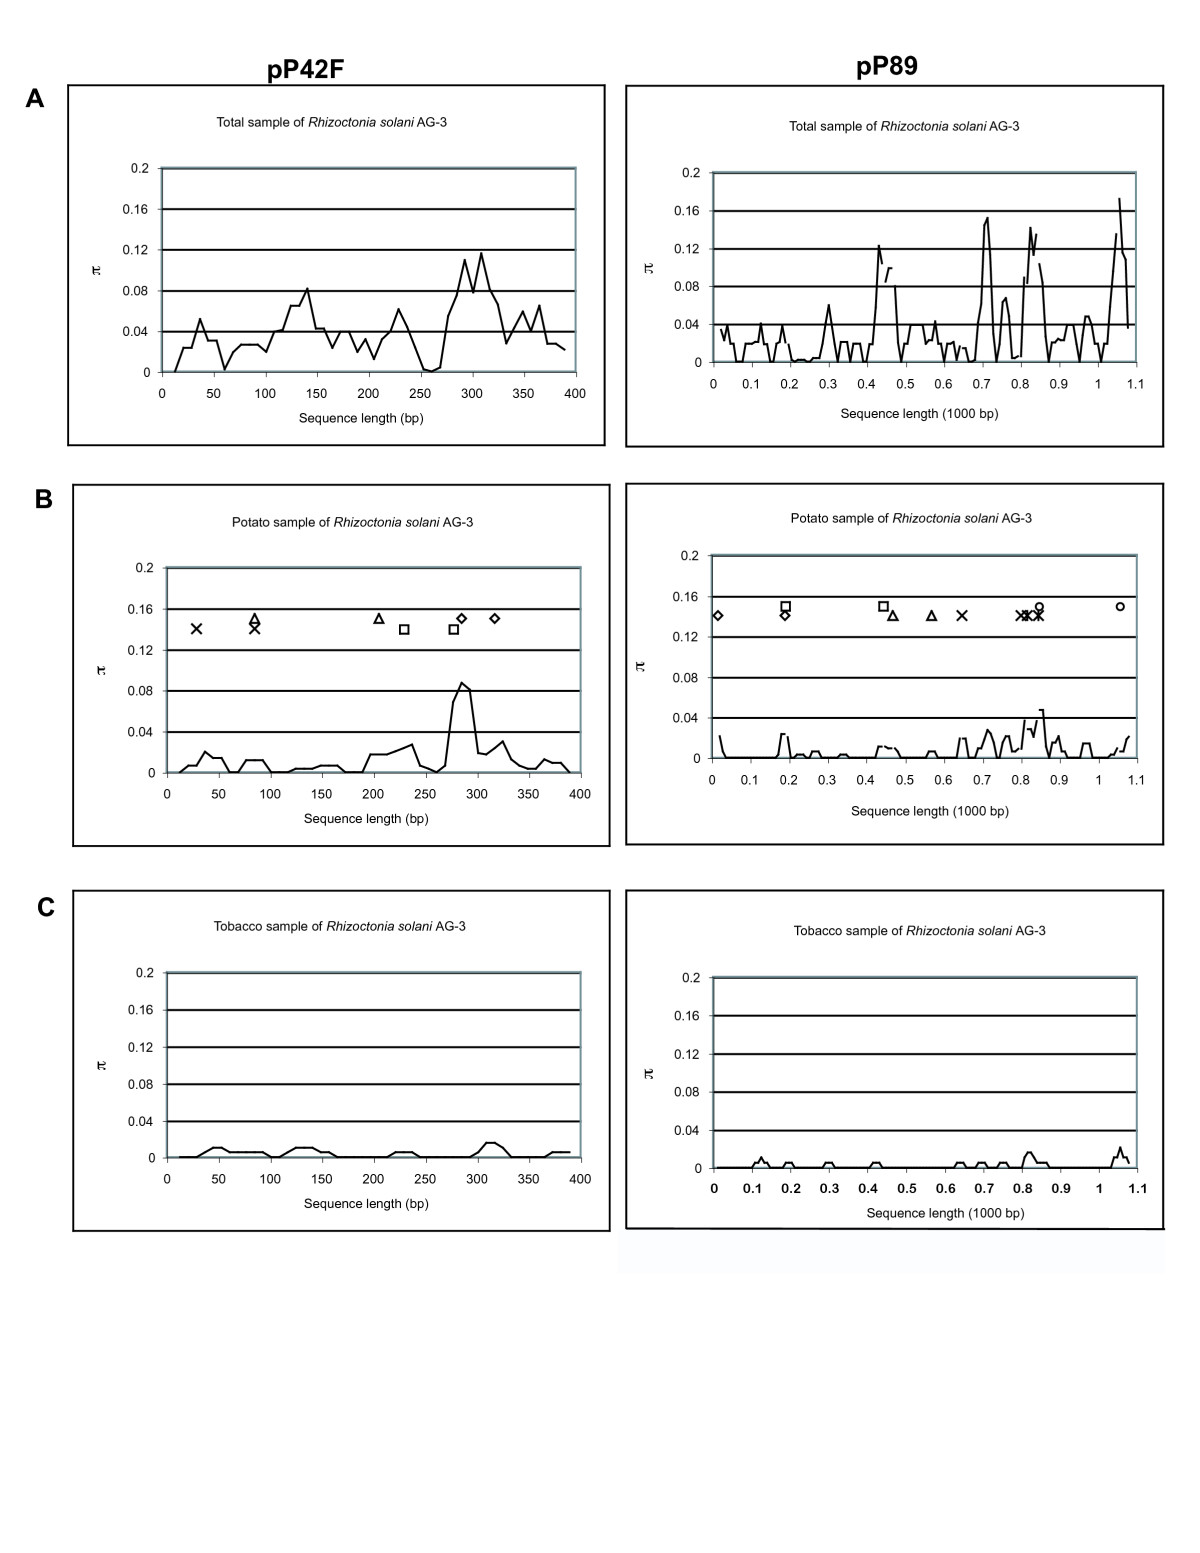 https://static-content.springer.com/image/art%3A10.1186%2F1471-2148-7-163/MediaObjects/12862_2007_Article_454_Fig1_HTML.jpg